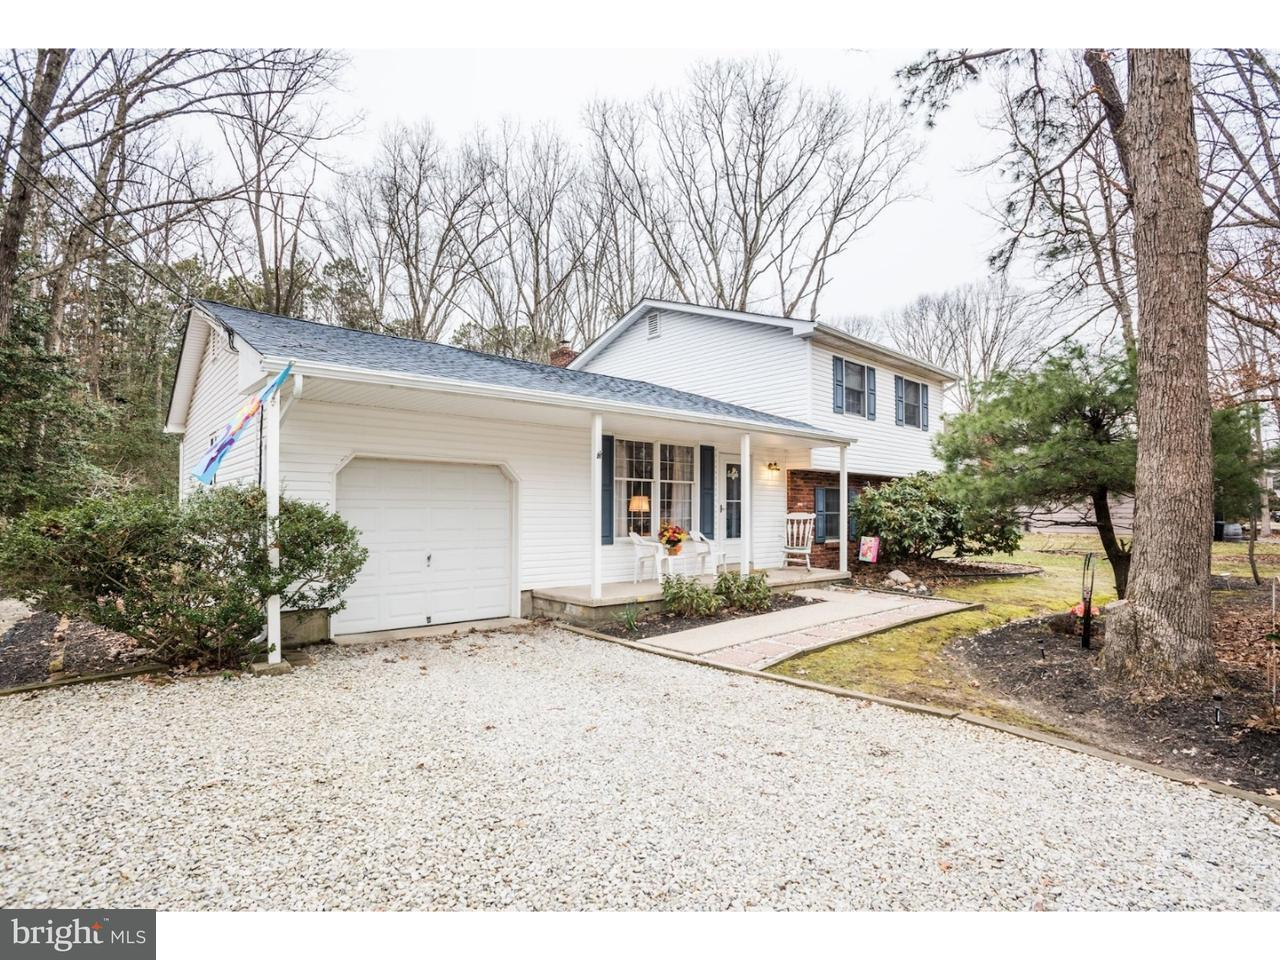 Local Real Estate: Foreclosures for Sale — Shamong, NJ — Coldwell Banker